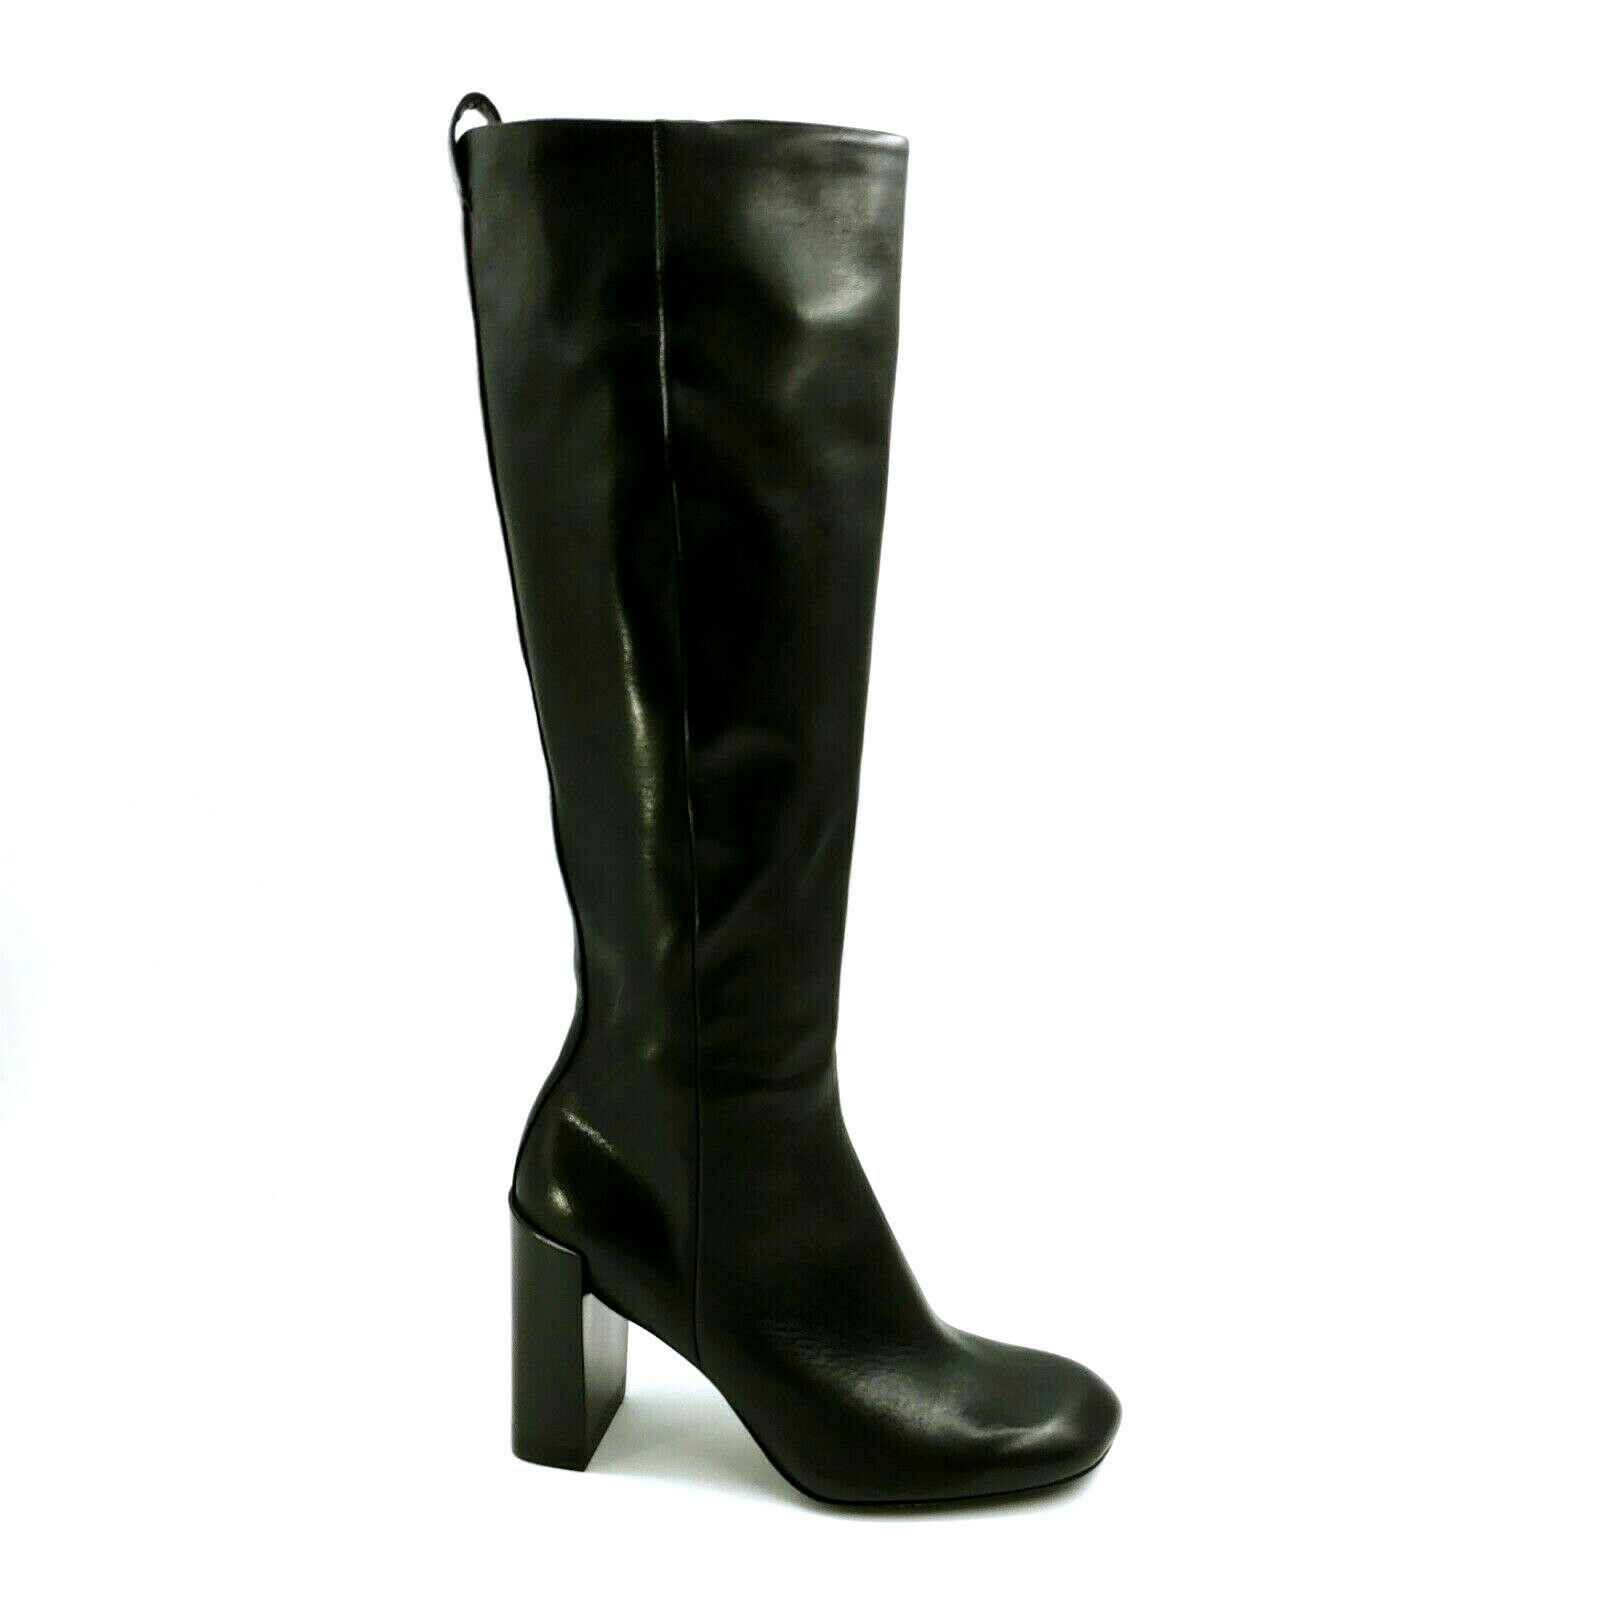 Primary image for Rag & Bone Womens Leather Knee High Riding Boots Stacked Heel Black EUR 36.5 New